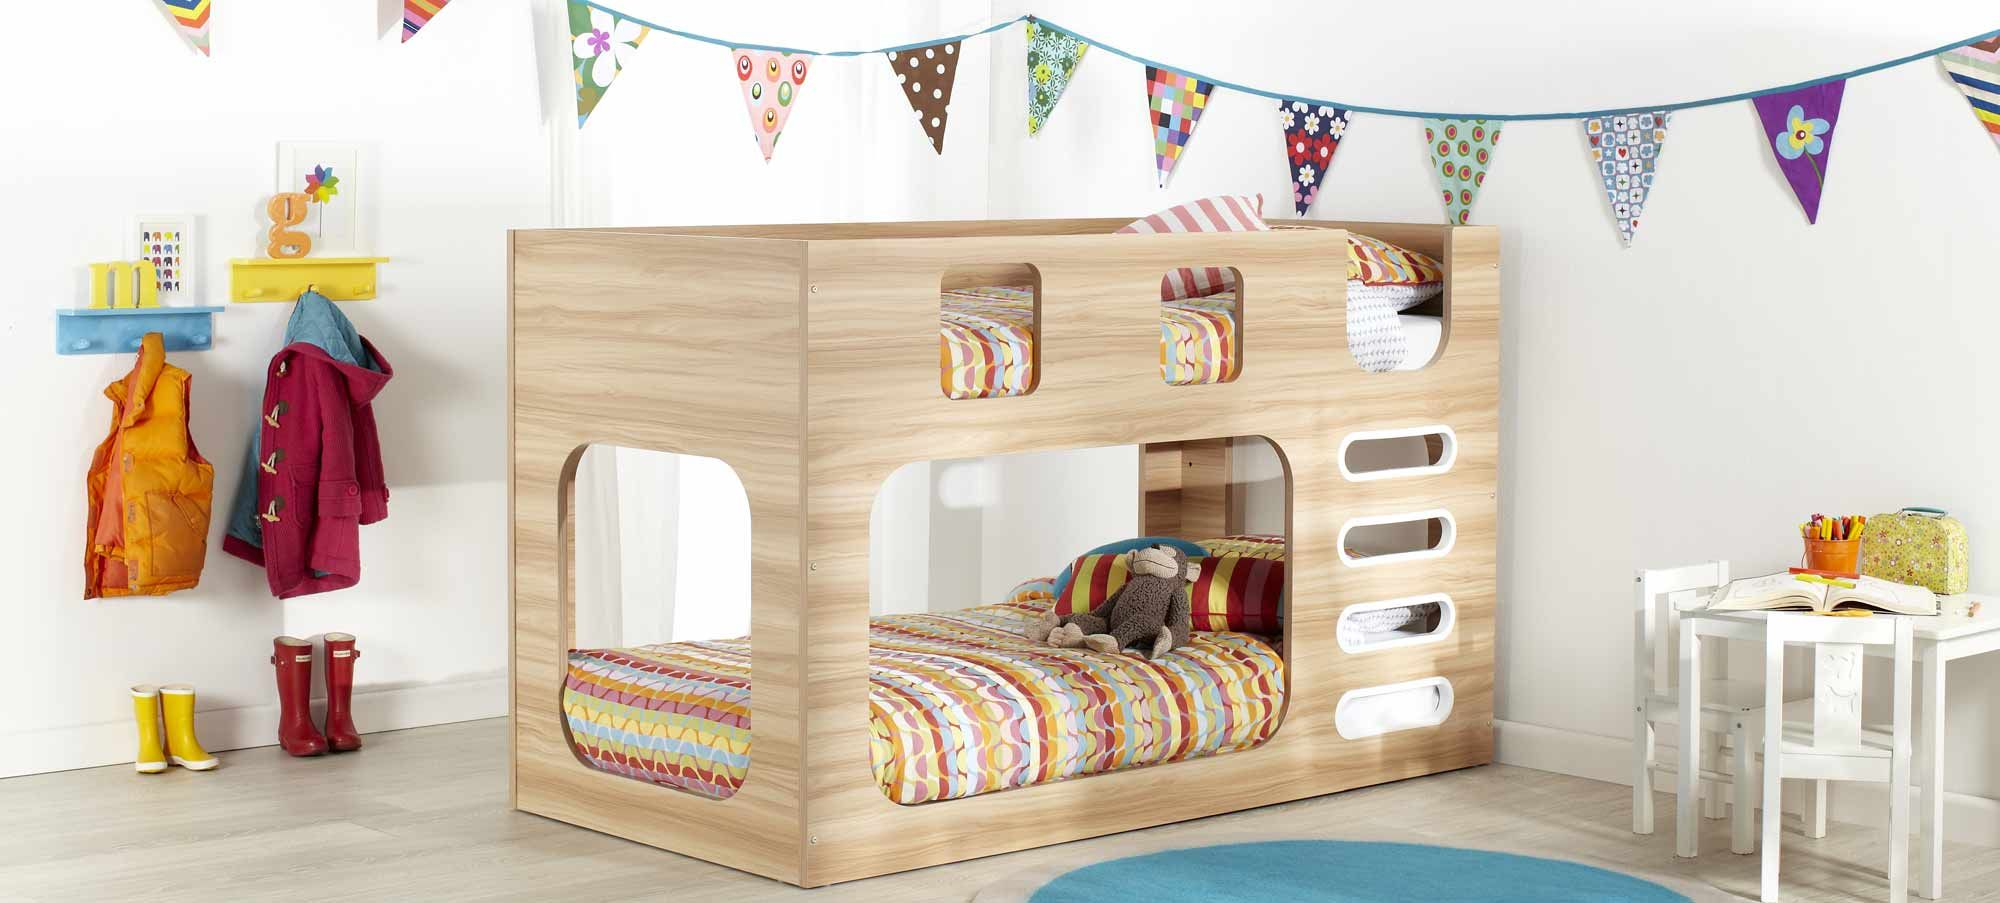 reputable site db8b3 7f99e h3>Saturn Bunk Bed</h3> <br /> The Saturn Bunk is a low rise ...